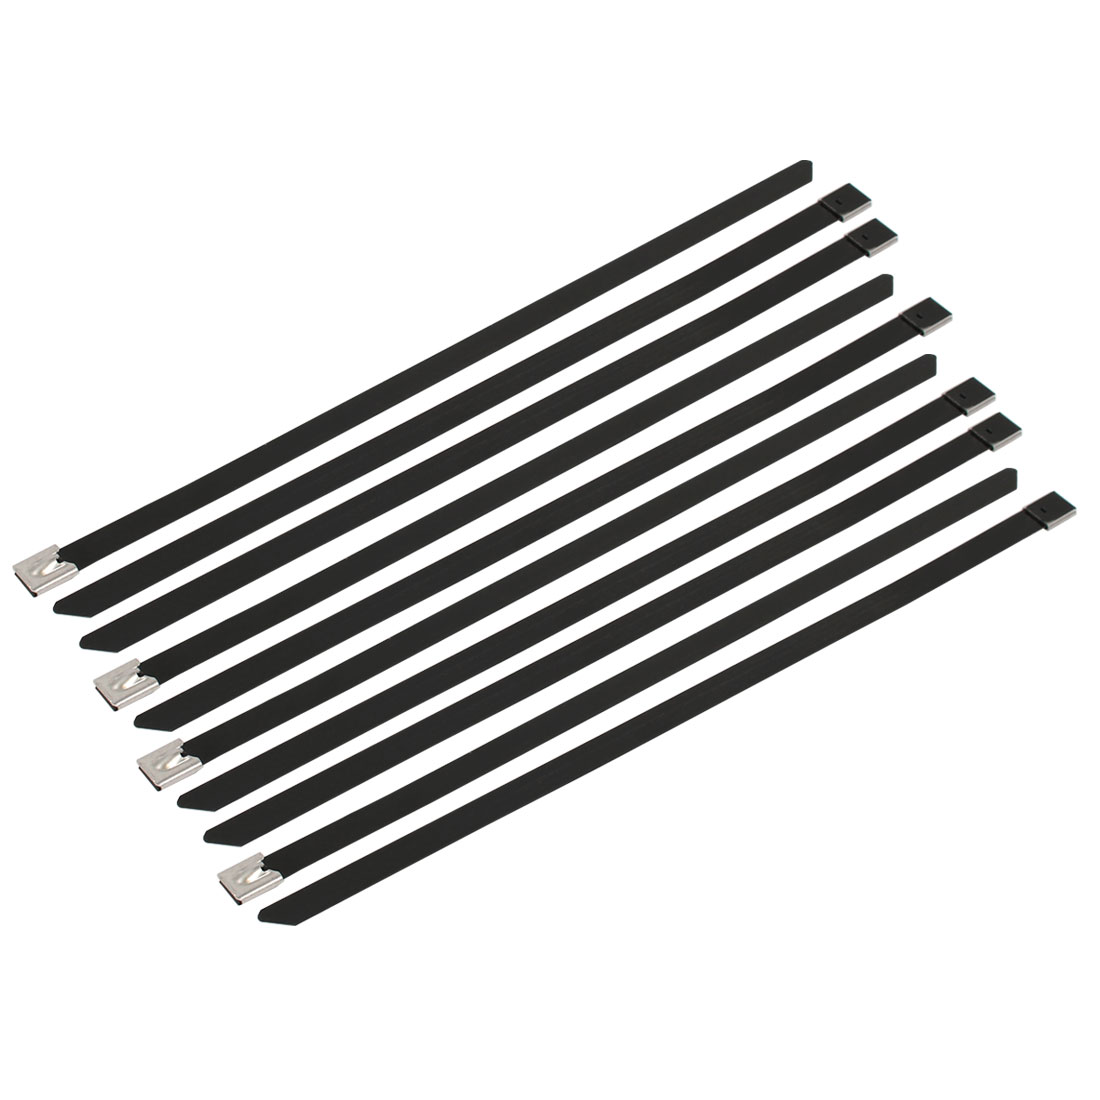 10pcs 10mm Width 300mm Length Stainless Steel Cable Tie Wire Strap Black